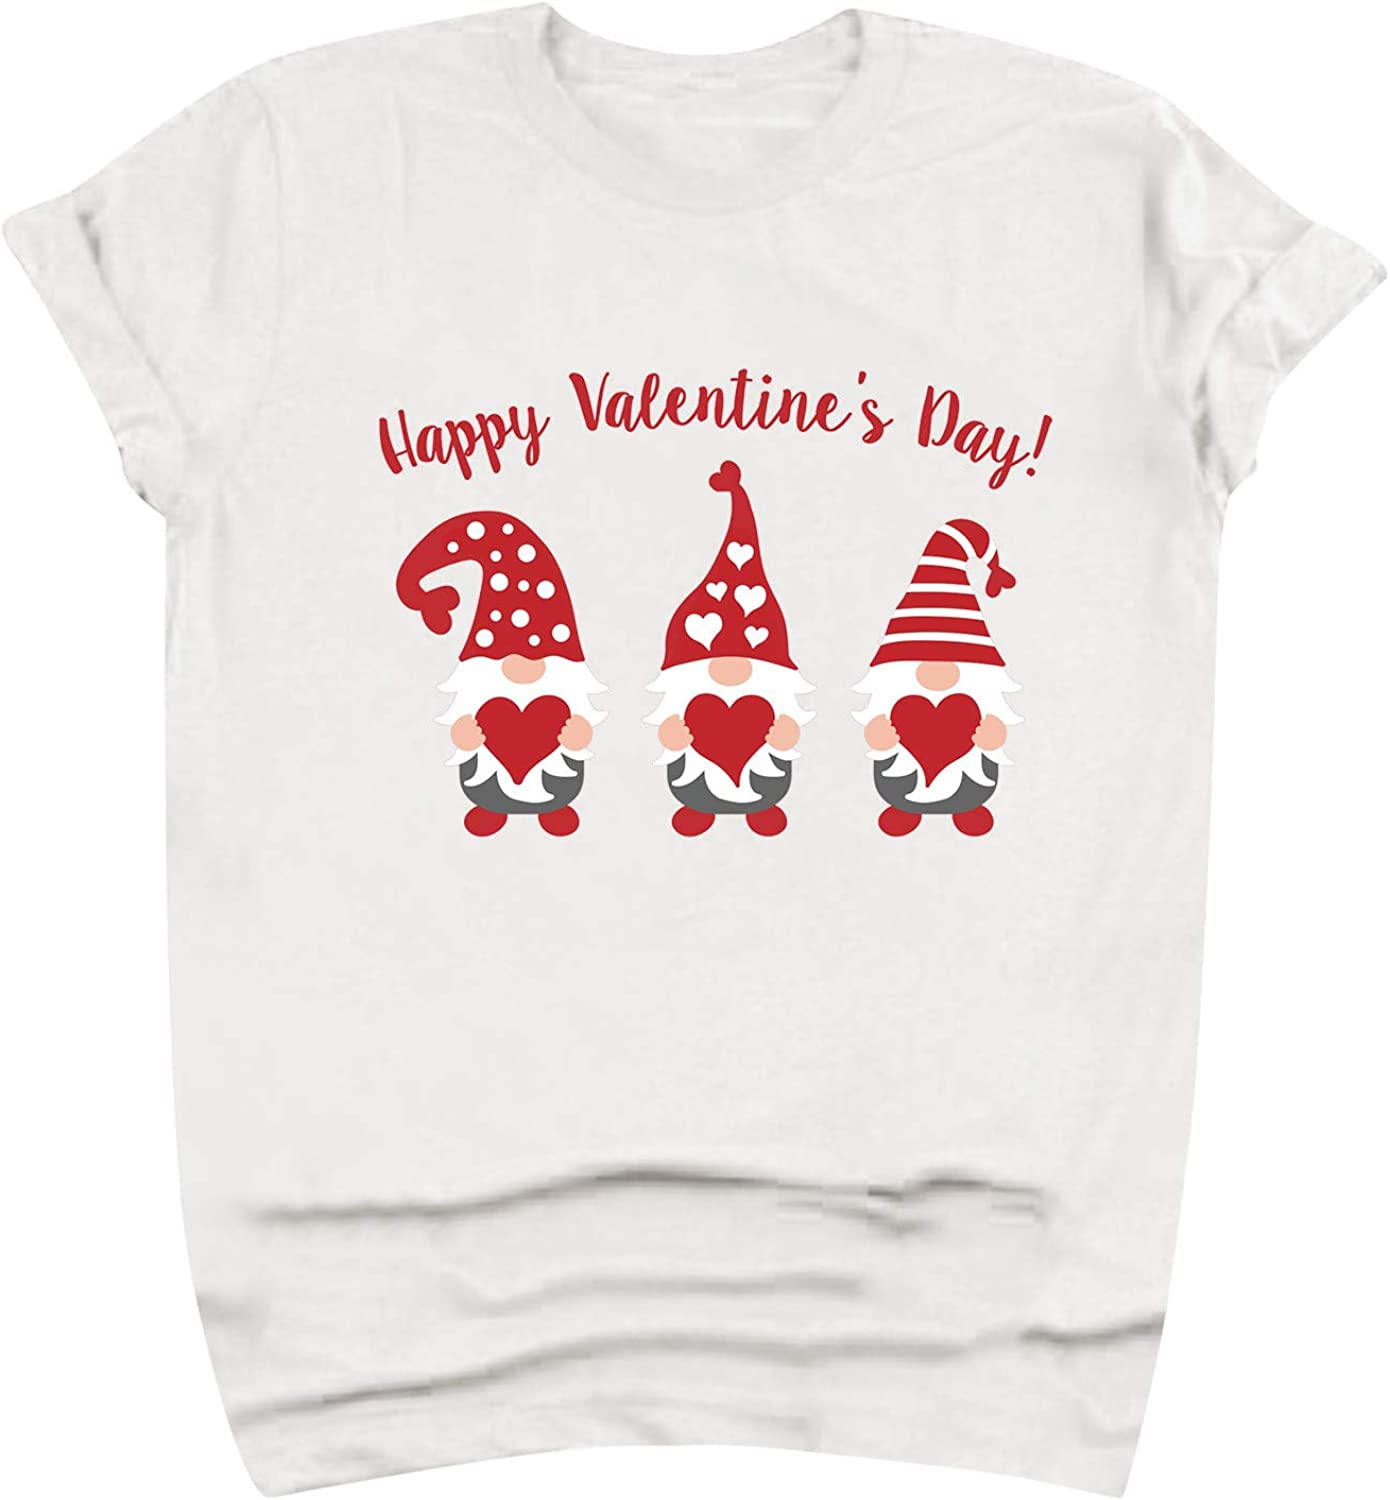 vcsheh Valentine's Day Shirt for Womens Cute Cartoons T-Shirt Red Heart Printed Shirts Short Sleeve Graphic Tees Tops